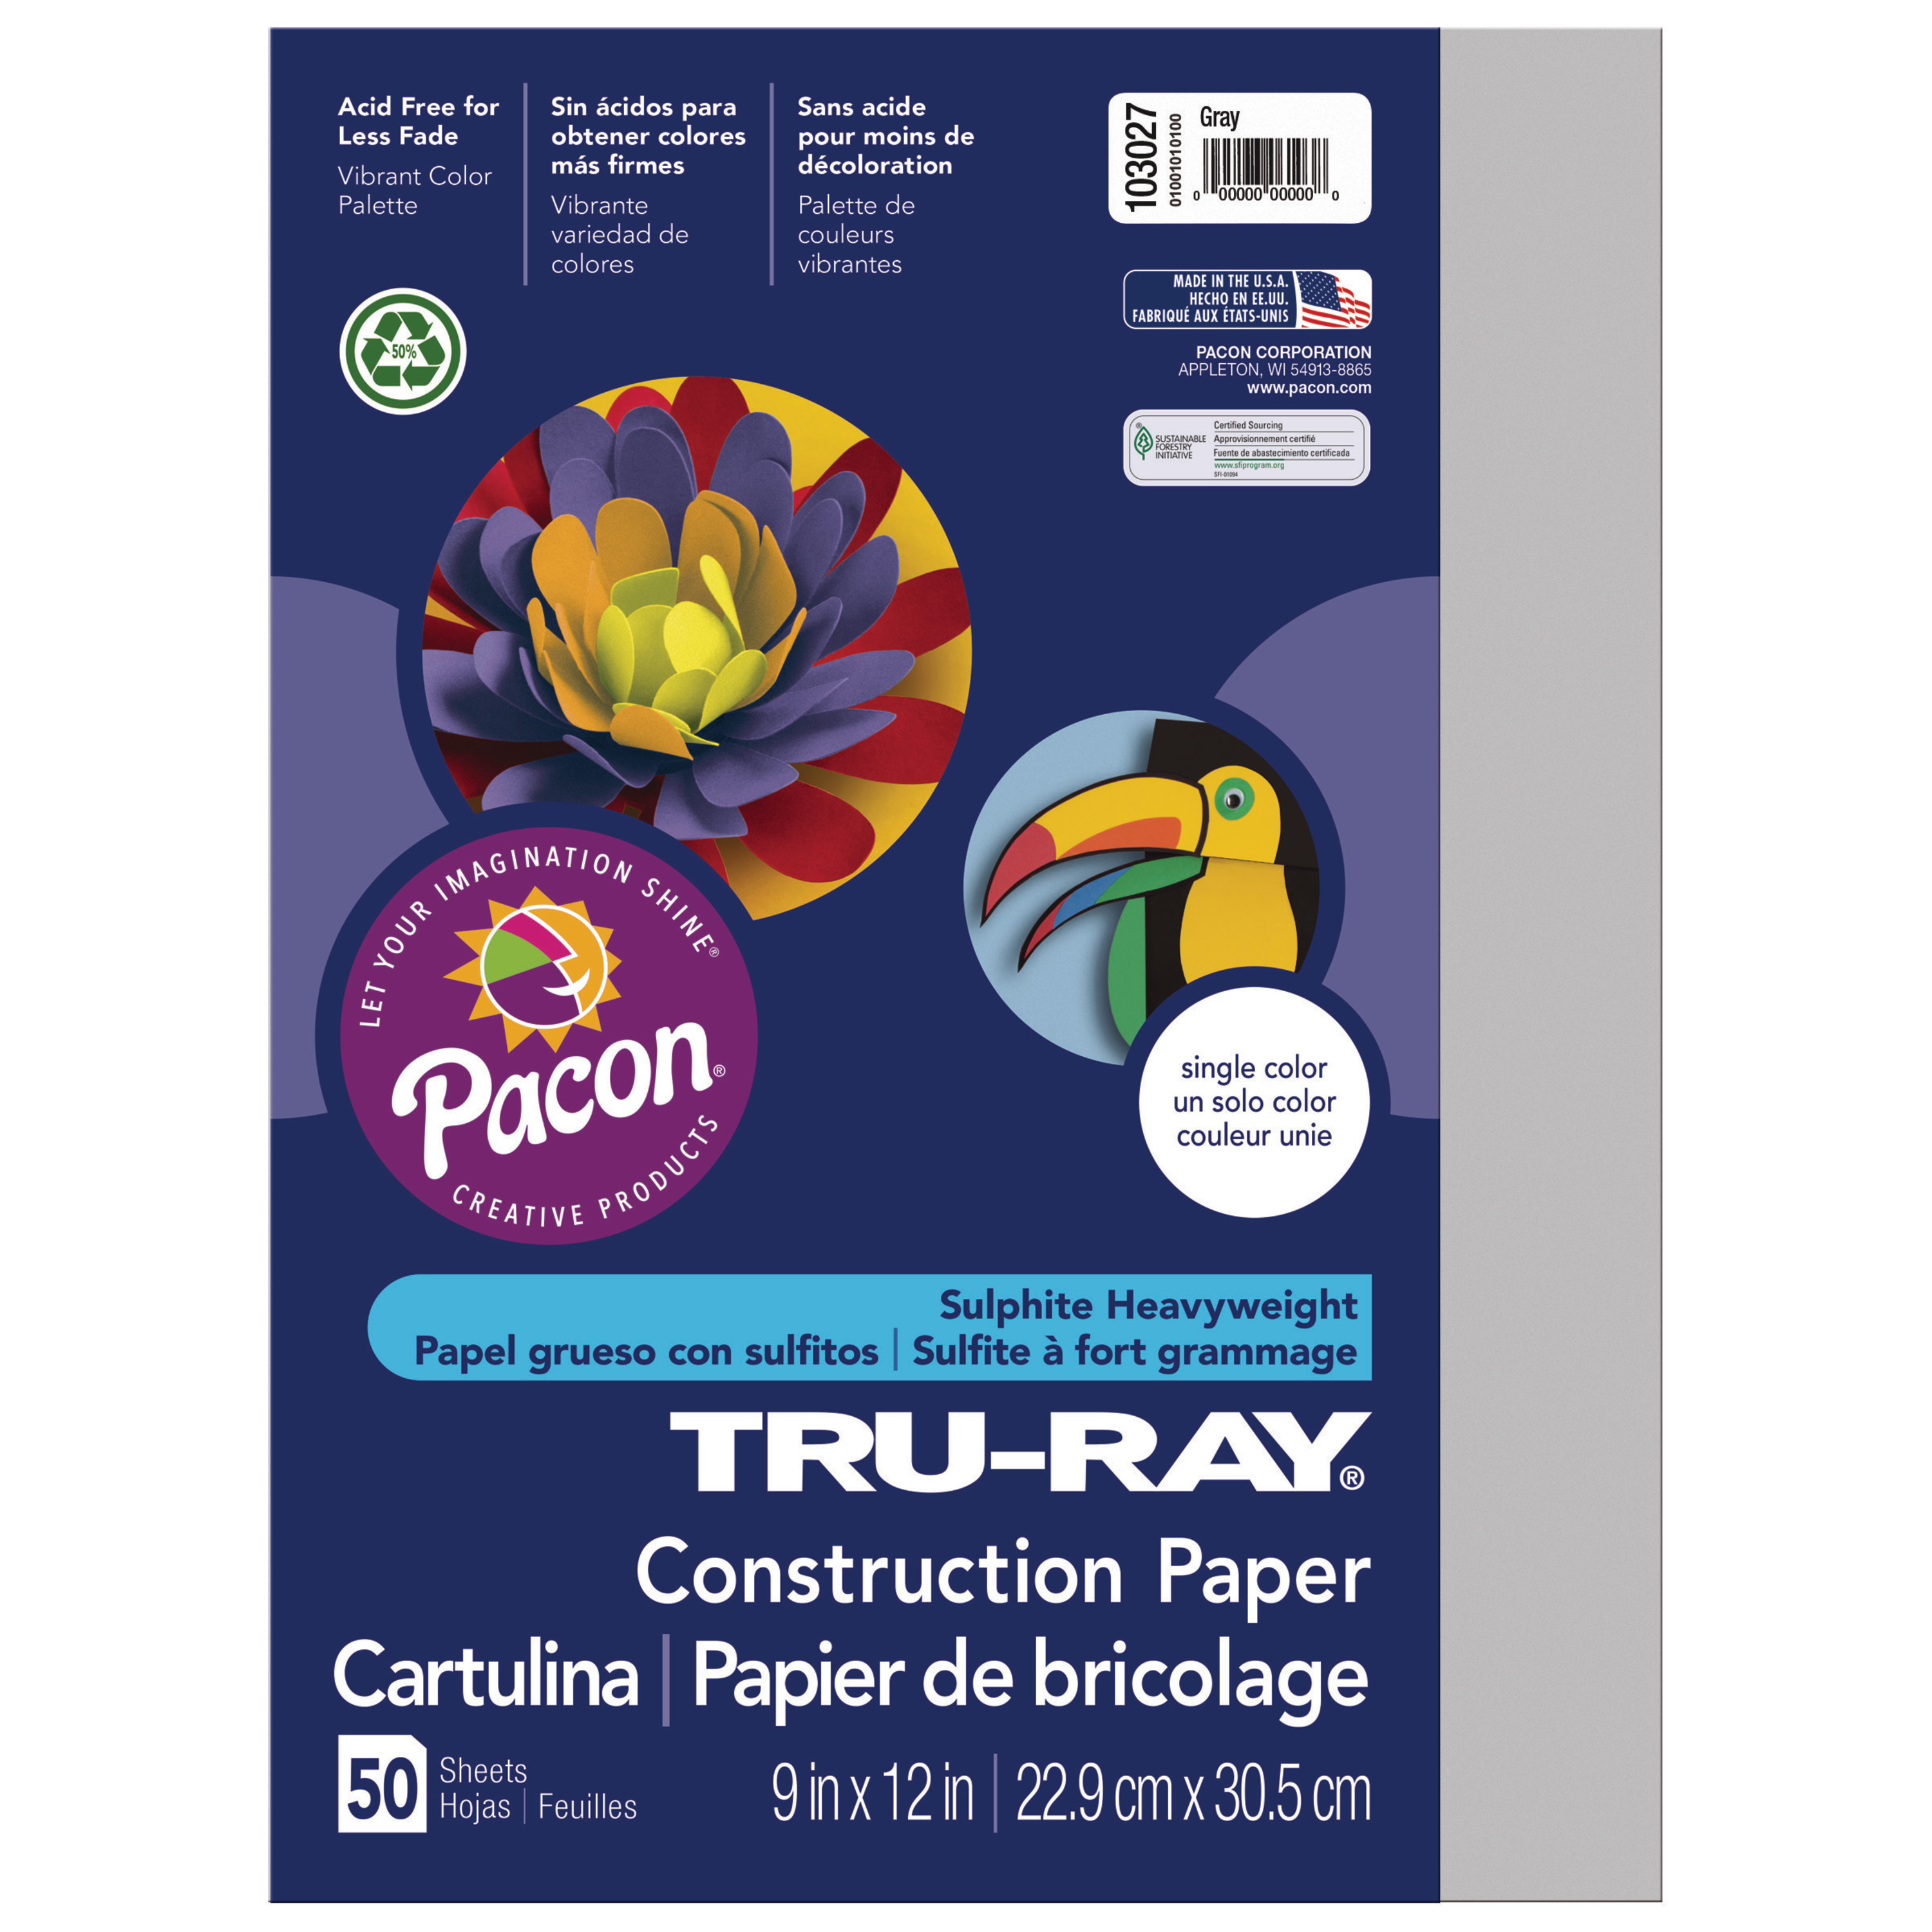 "Pacon Tru-Ray Construction Paper, 9"" x 12"", Gray"